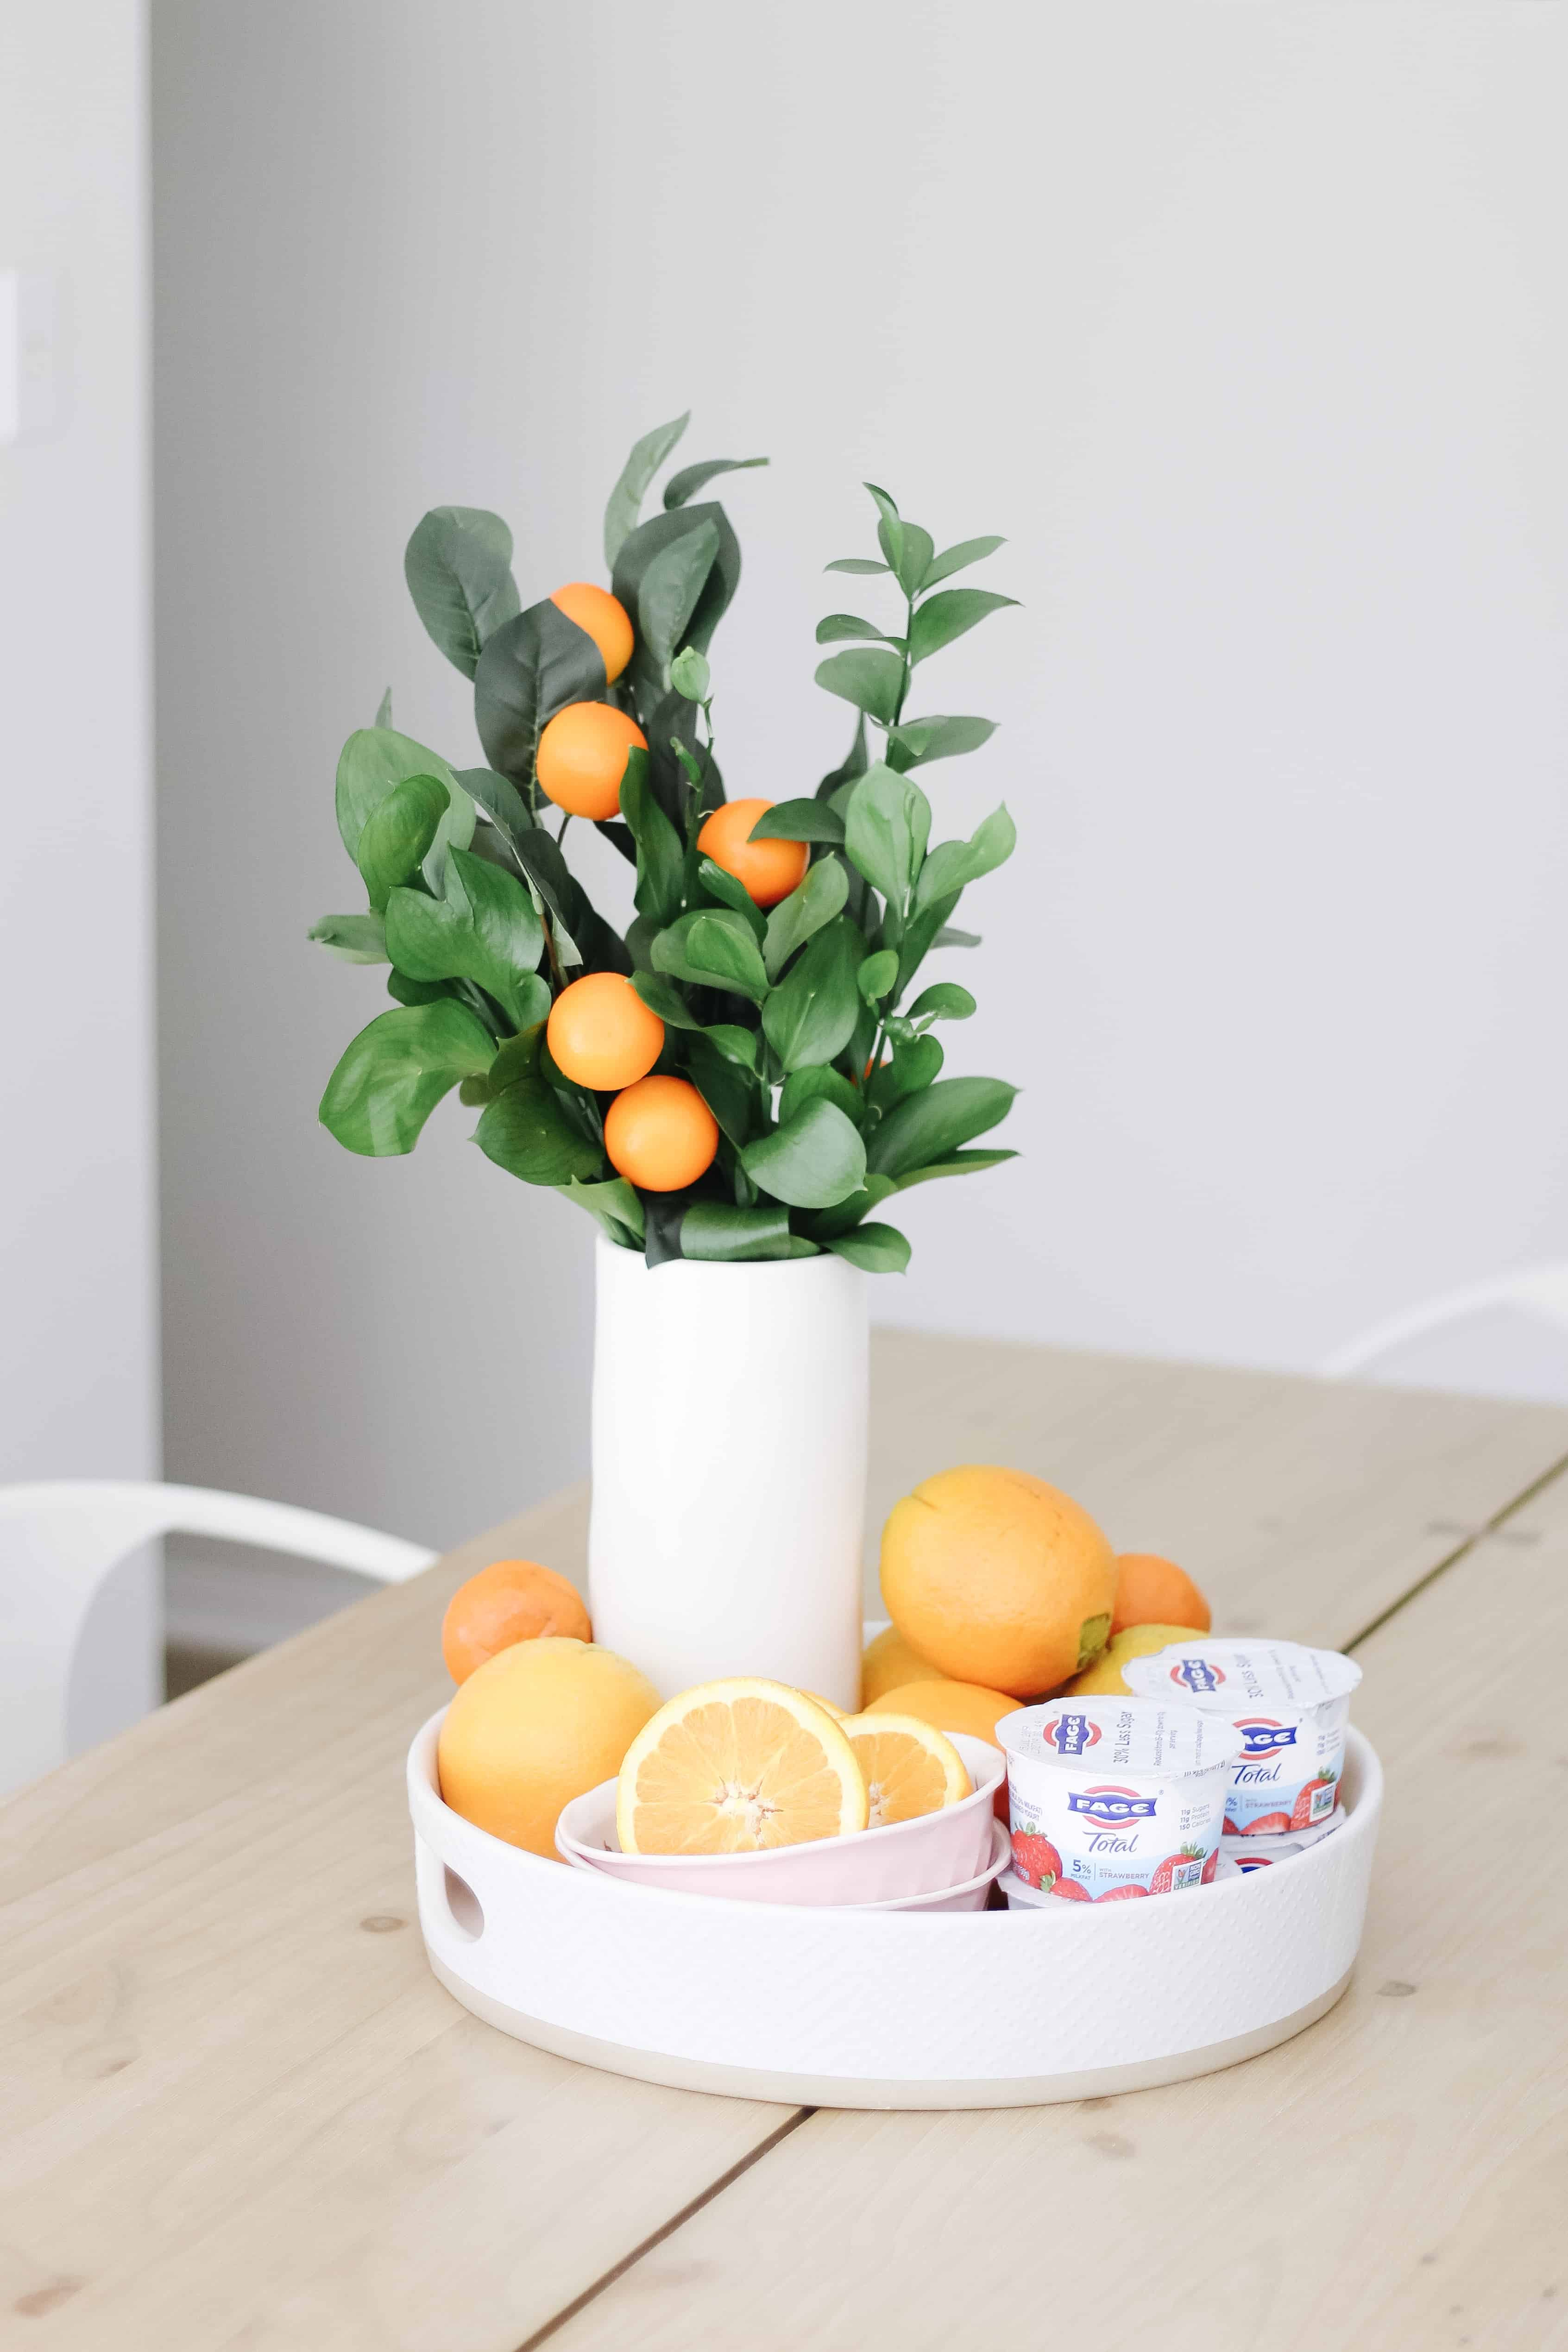 Fage yogurt and oranges in vase